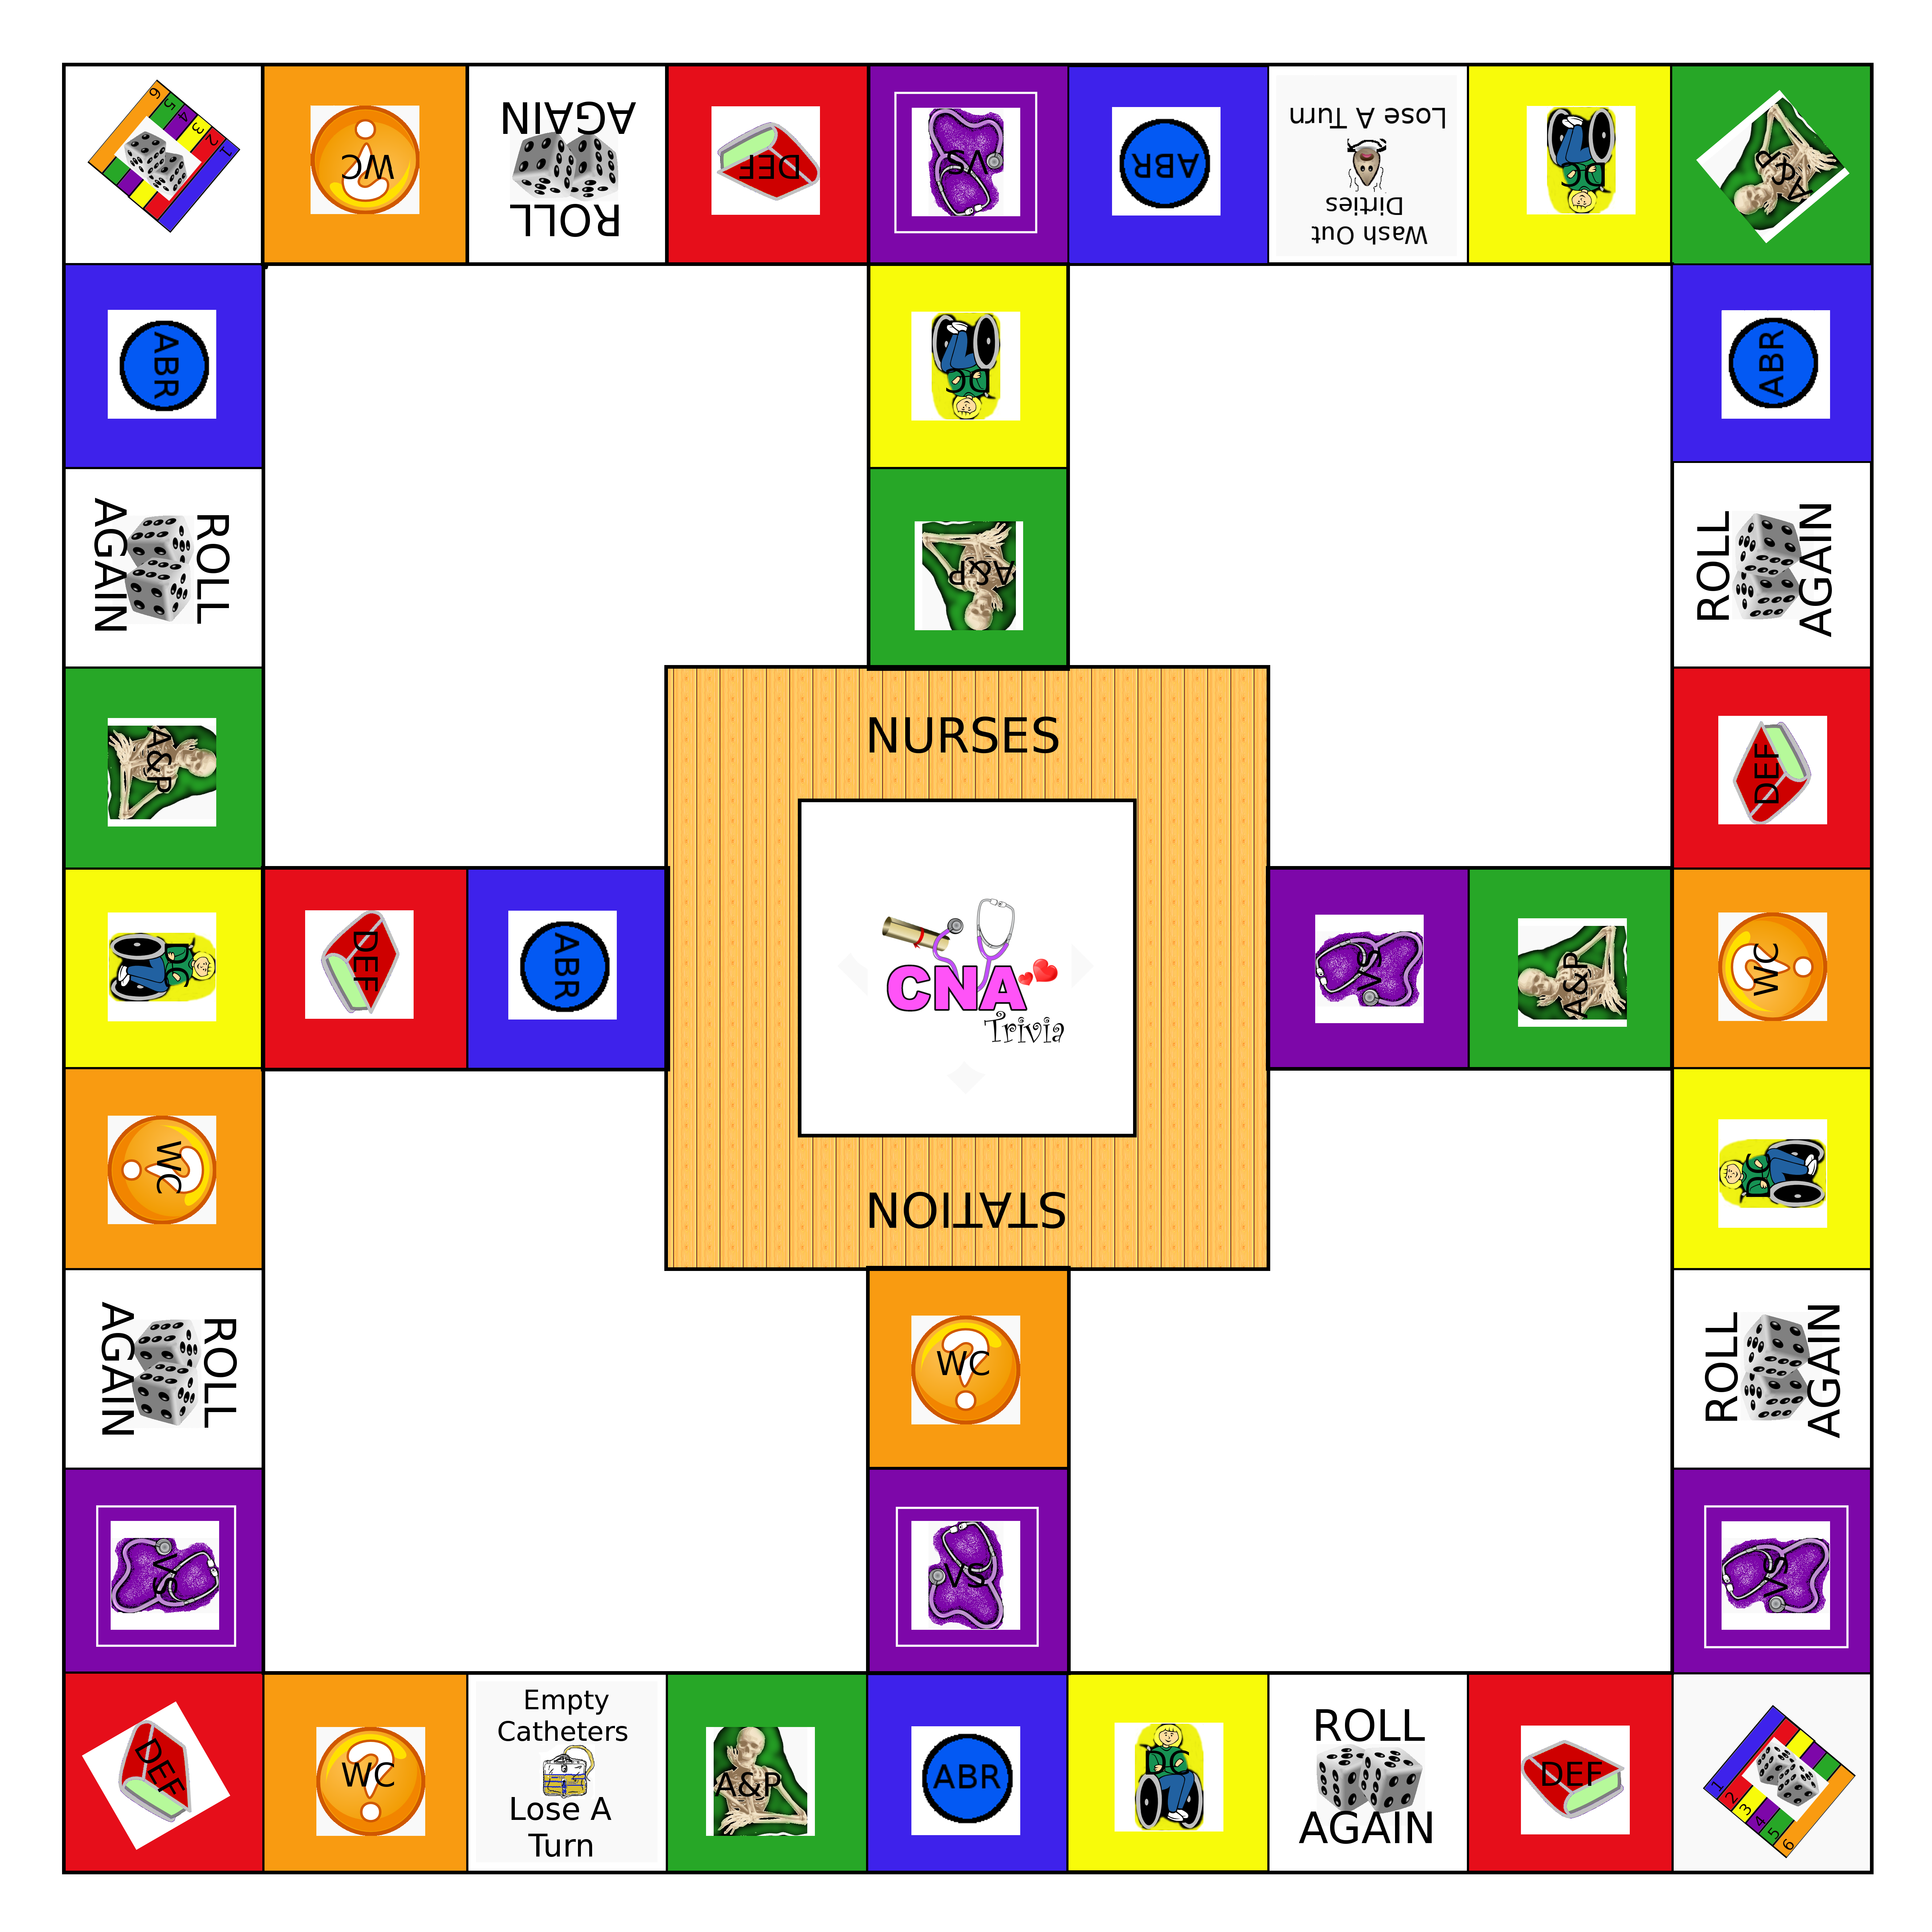 CNA Trivia is an exciting trivia game designed for nurses